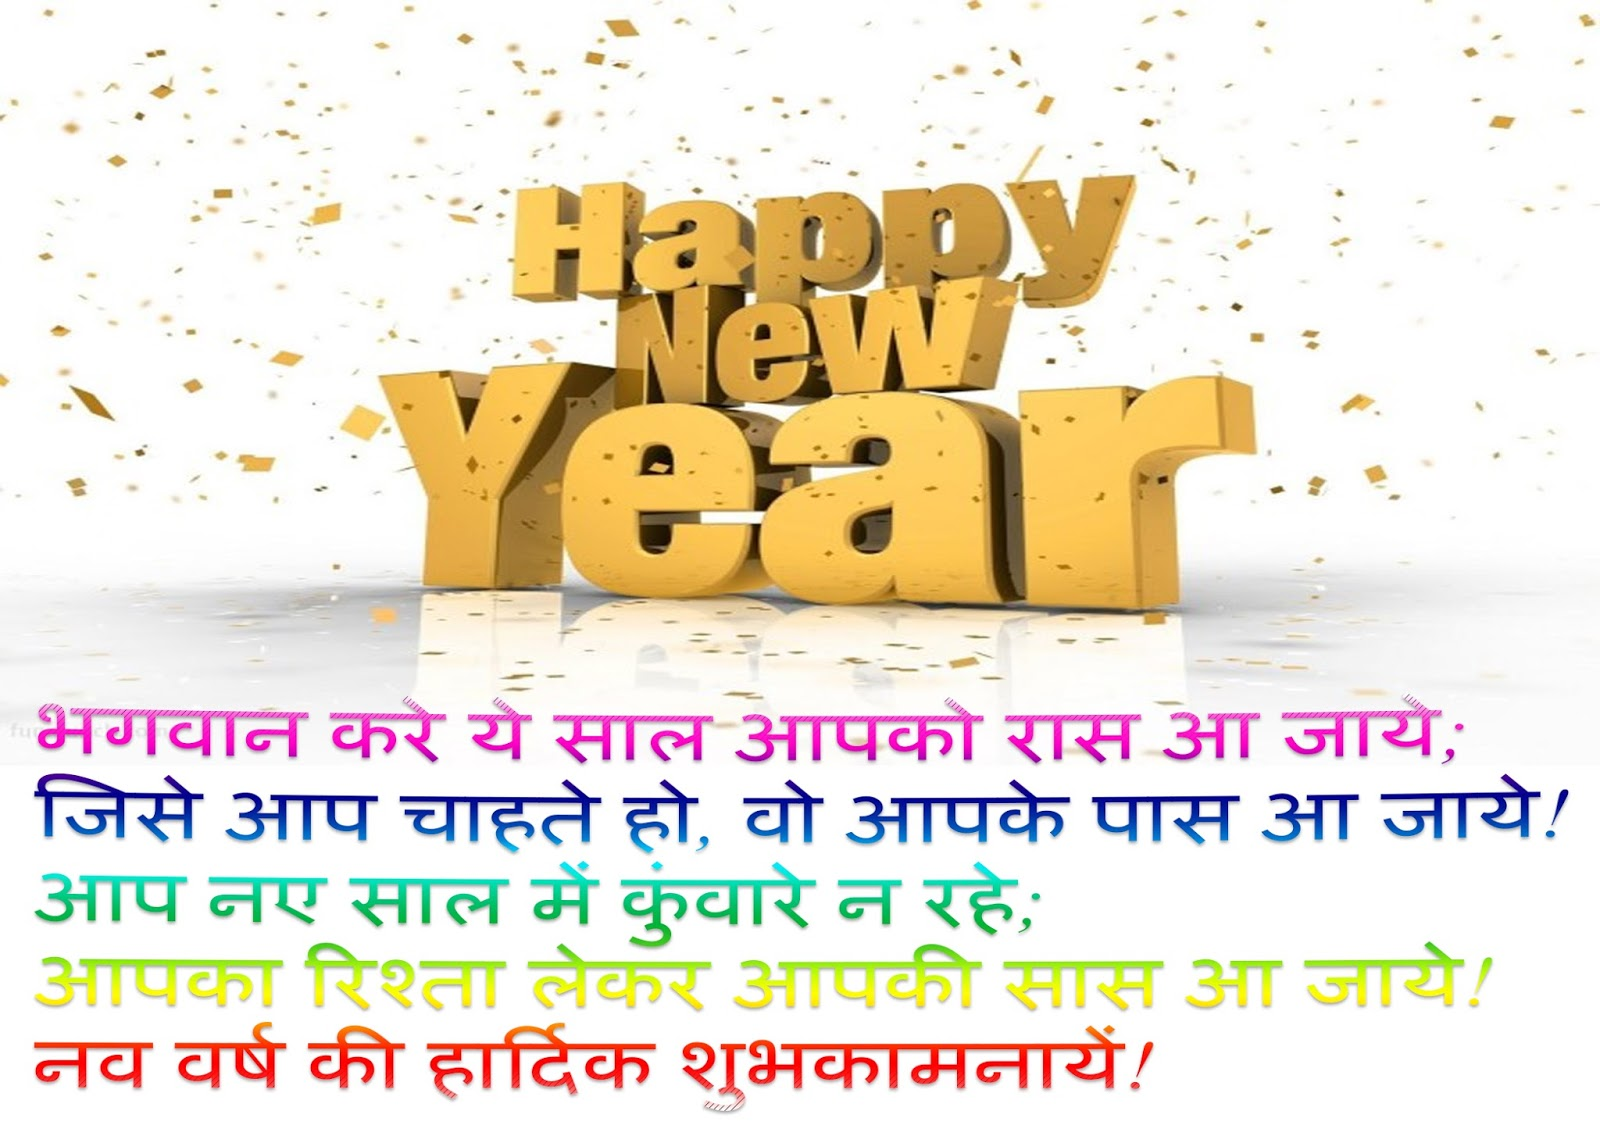 Happy New year SMS Messages Hindi ~ Whatsapp Messages